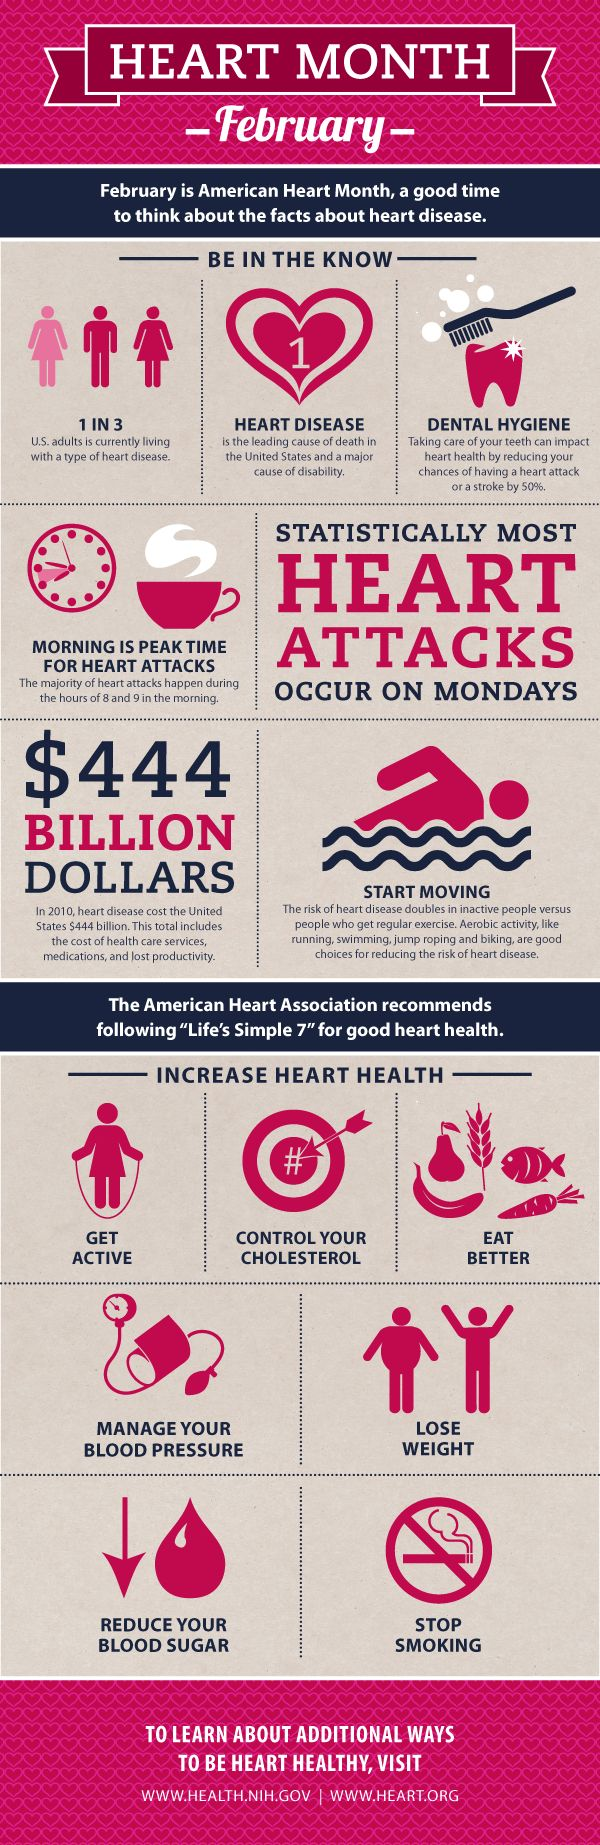 February is American heart month. Know the facts about heart disease. #Cardiovascular heart disease #infographic.